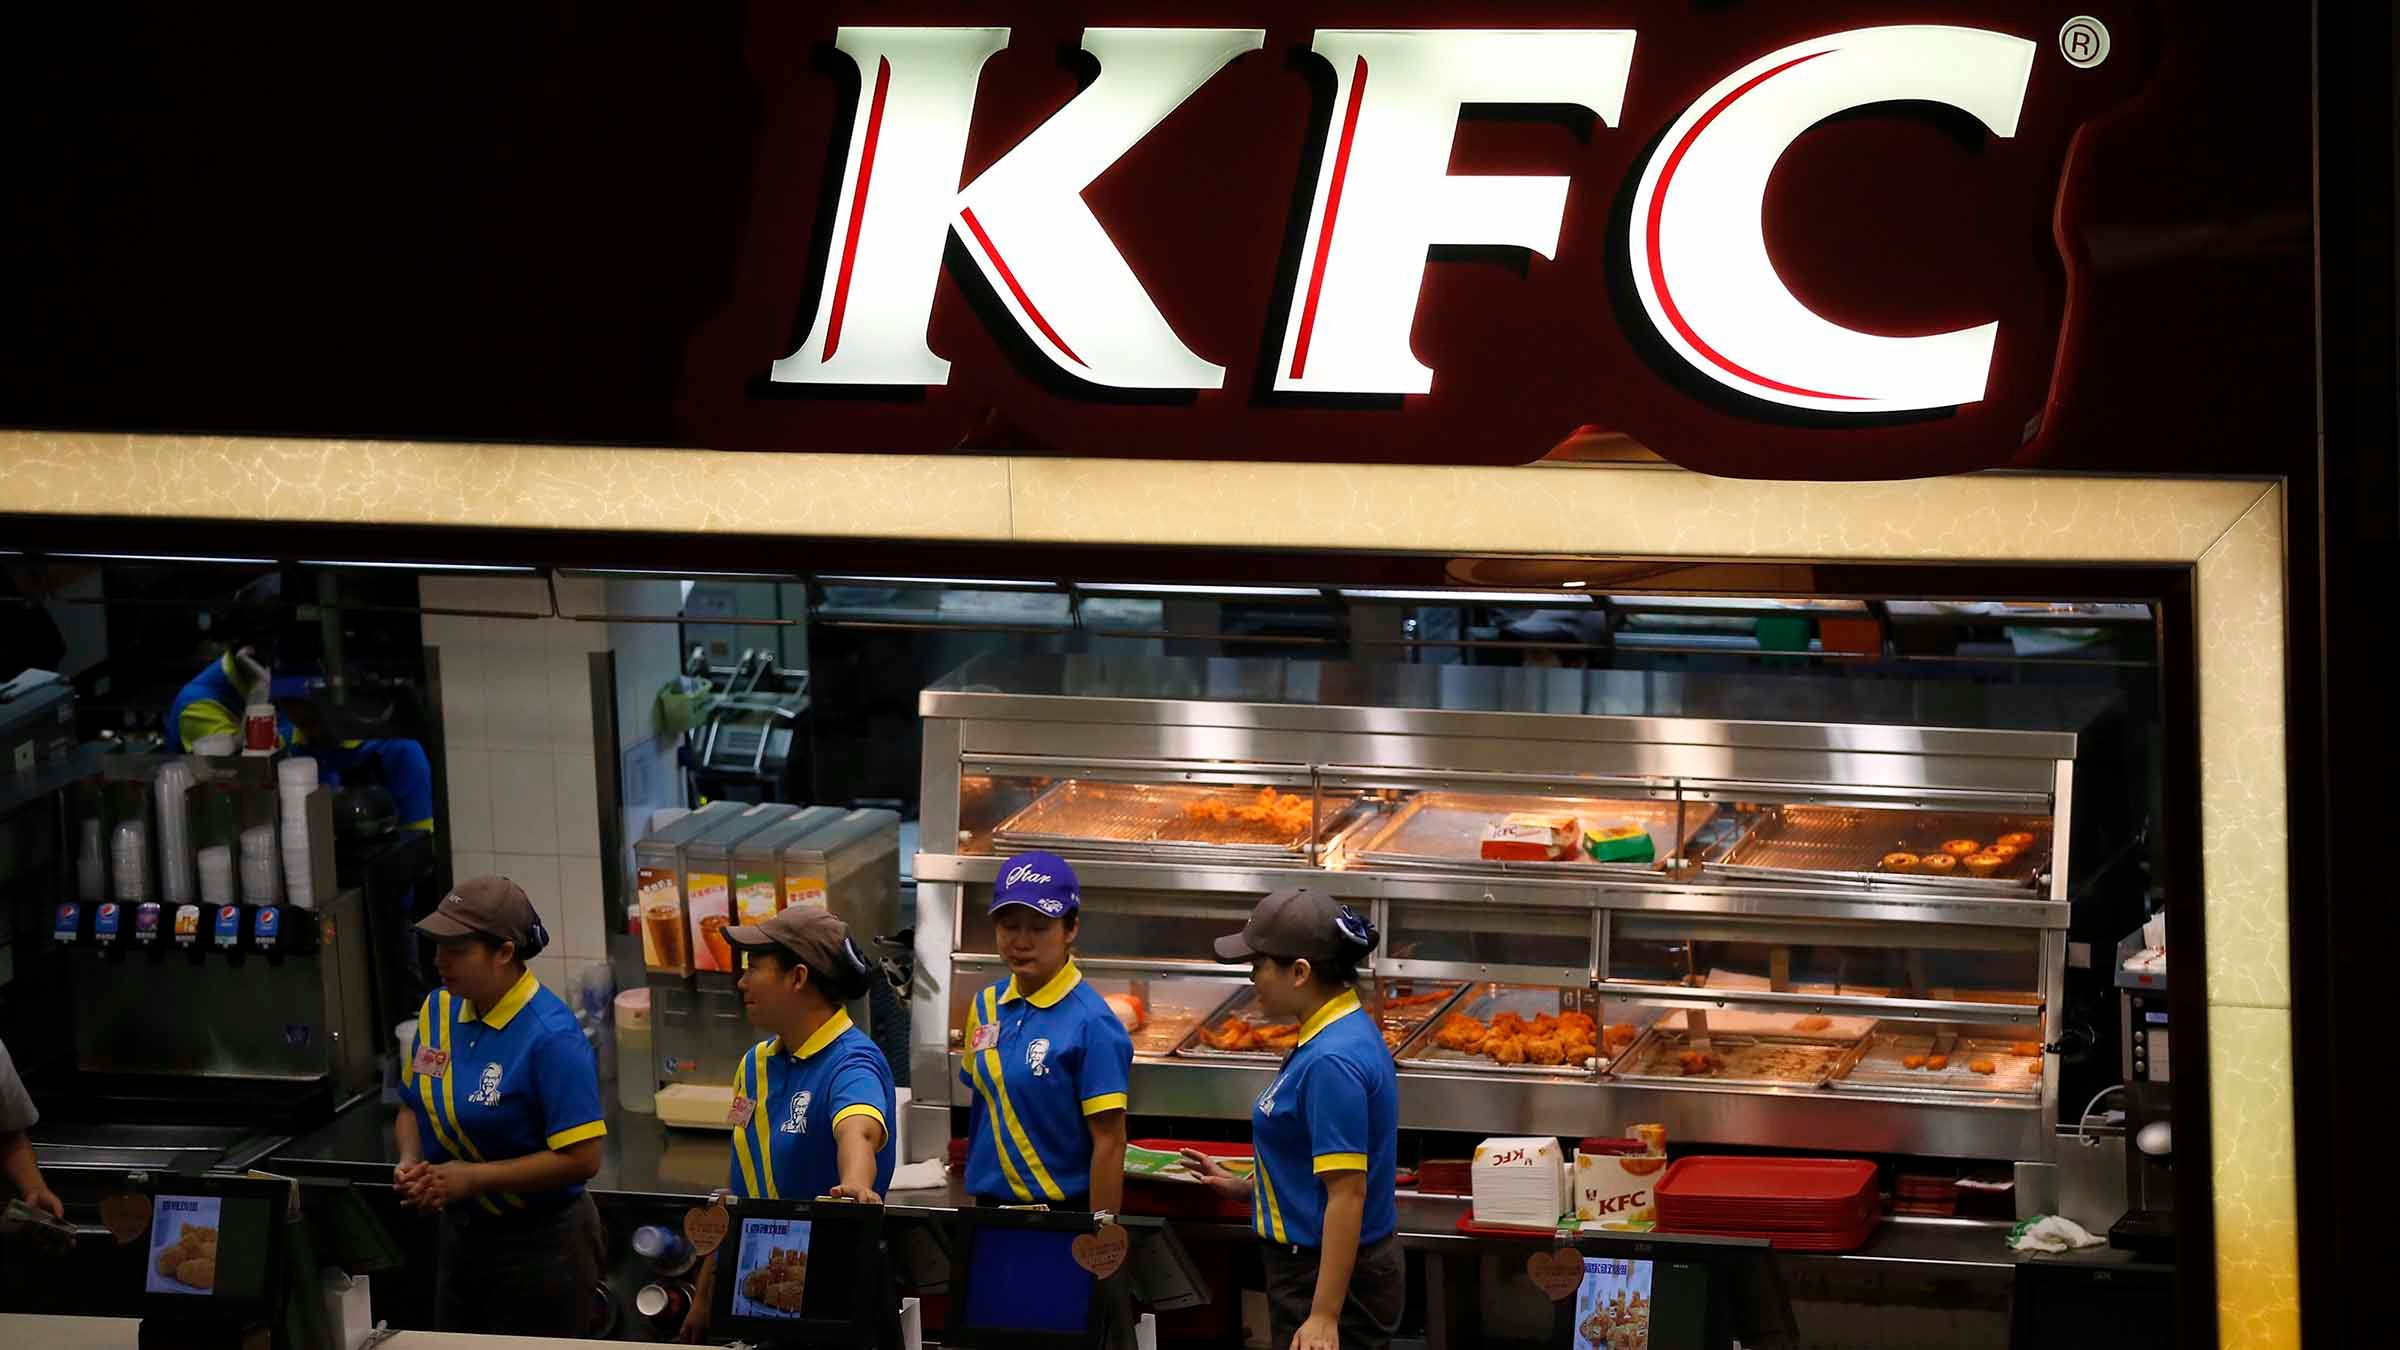 Yum China Accelerates New Store Openings, Yet Posts Disappointing Earnings